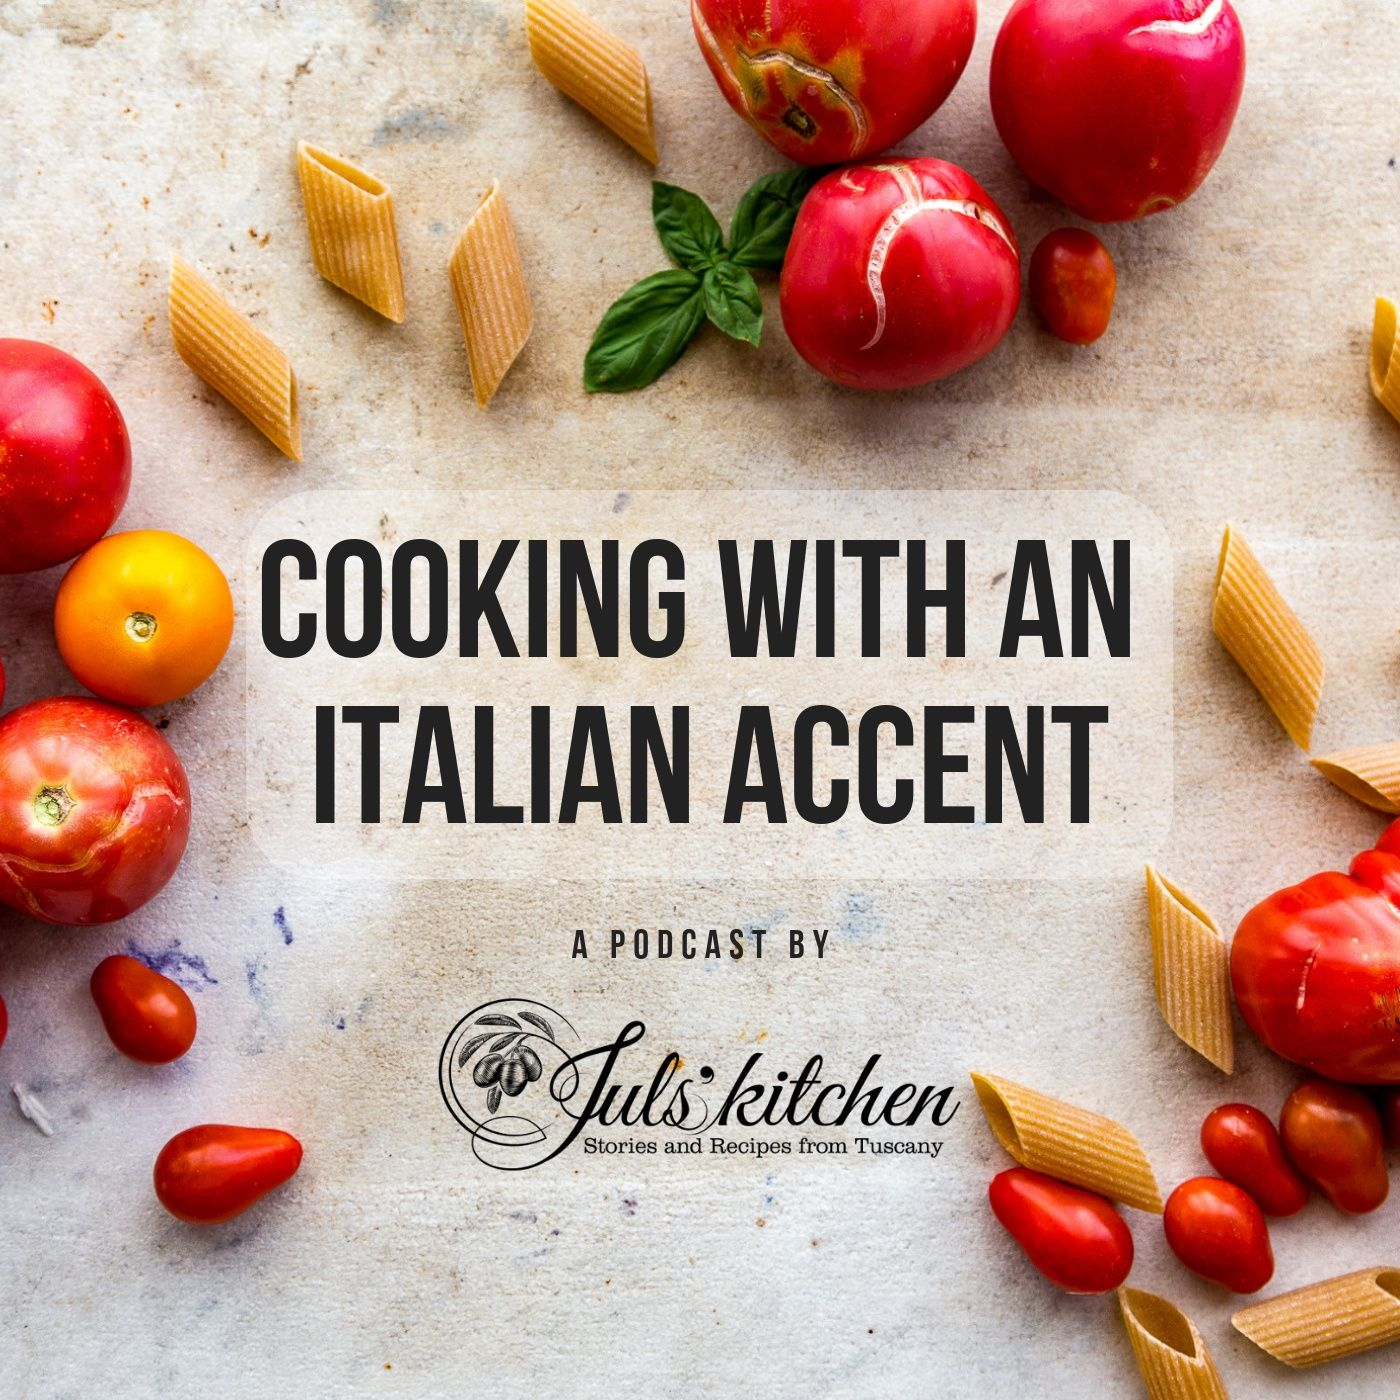 Tuscan bread, the staple of Tuscan cooking - Cooking with an Italian accent